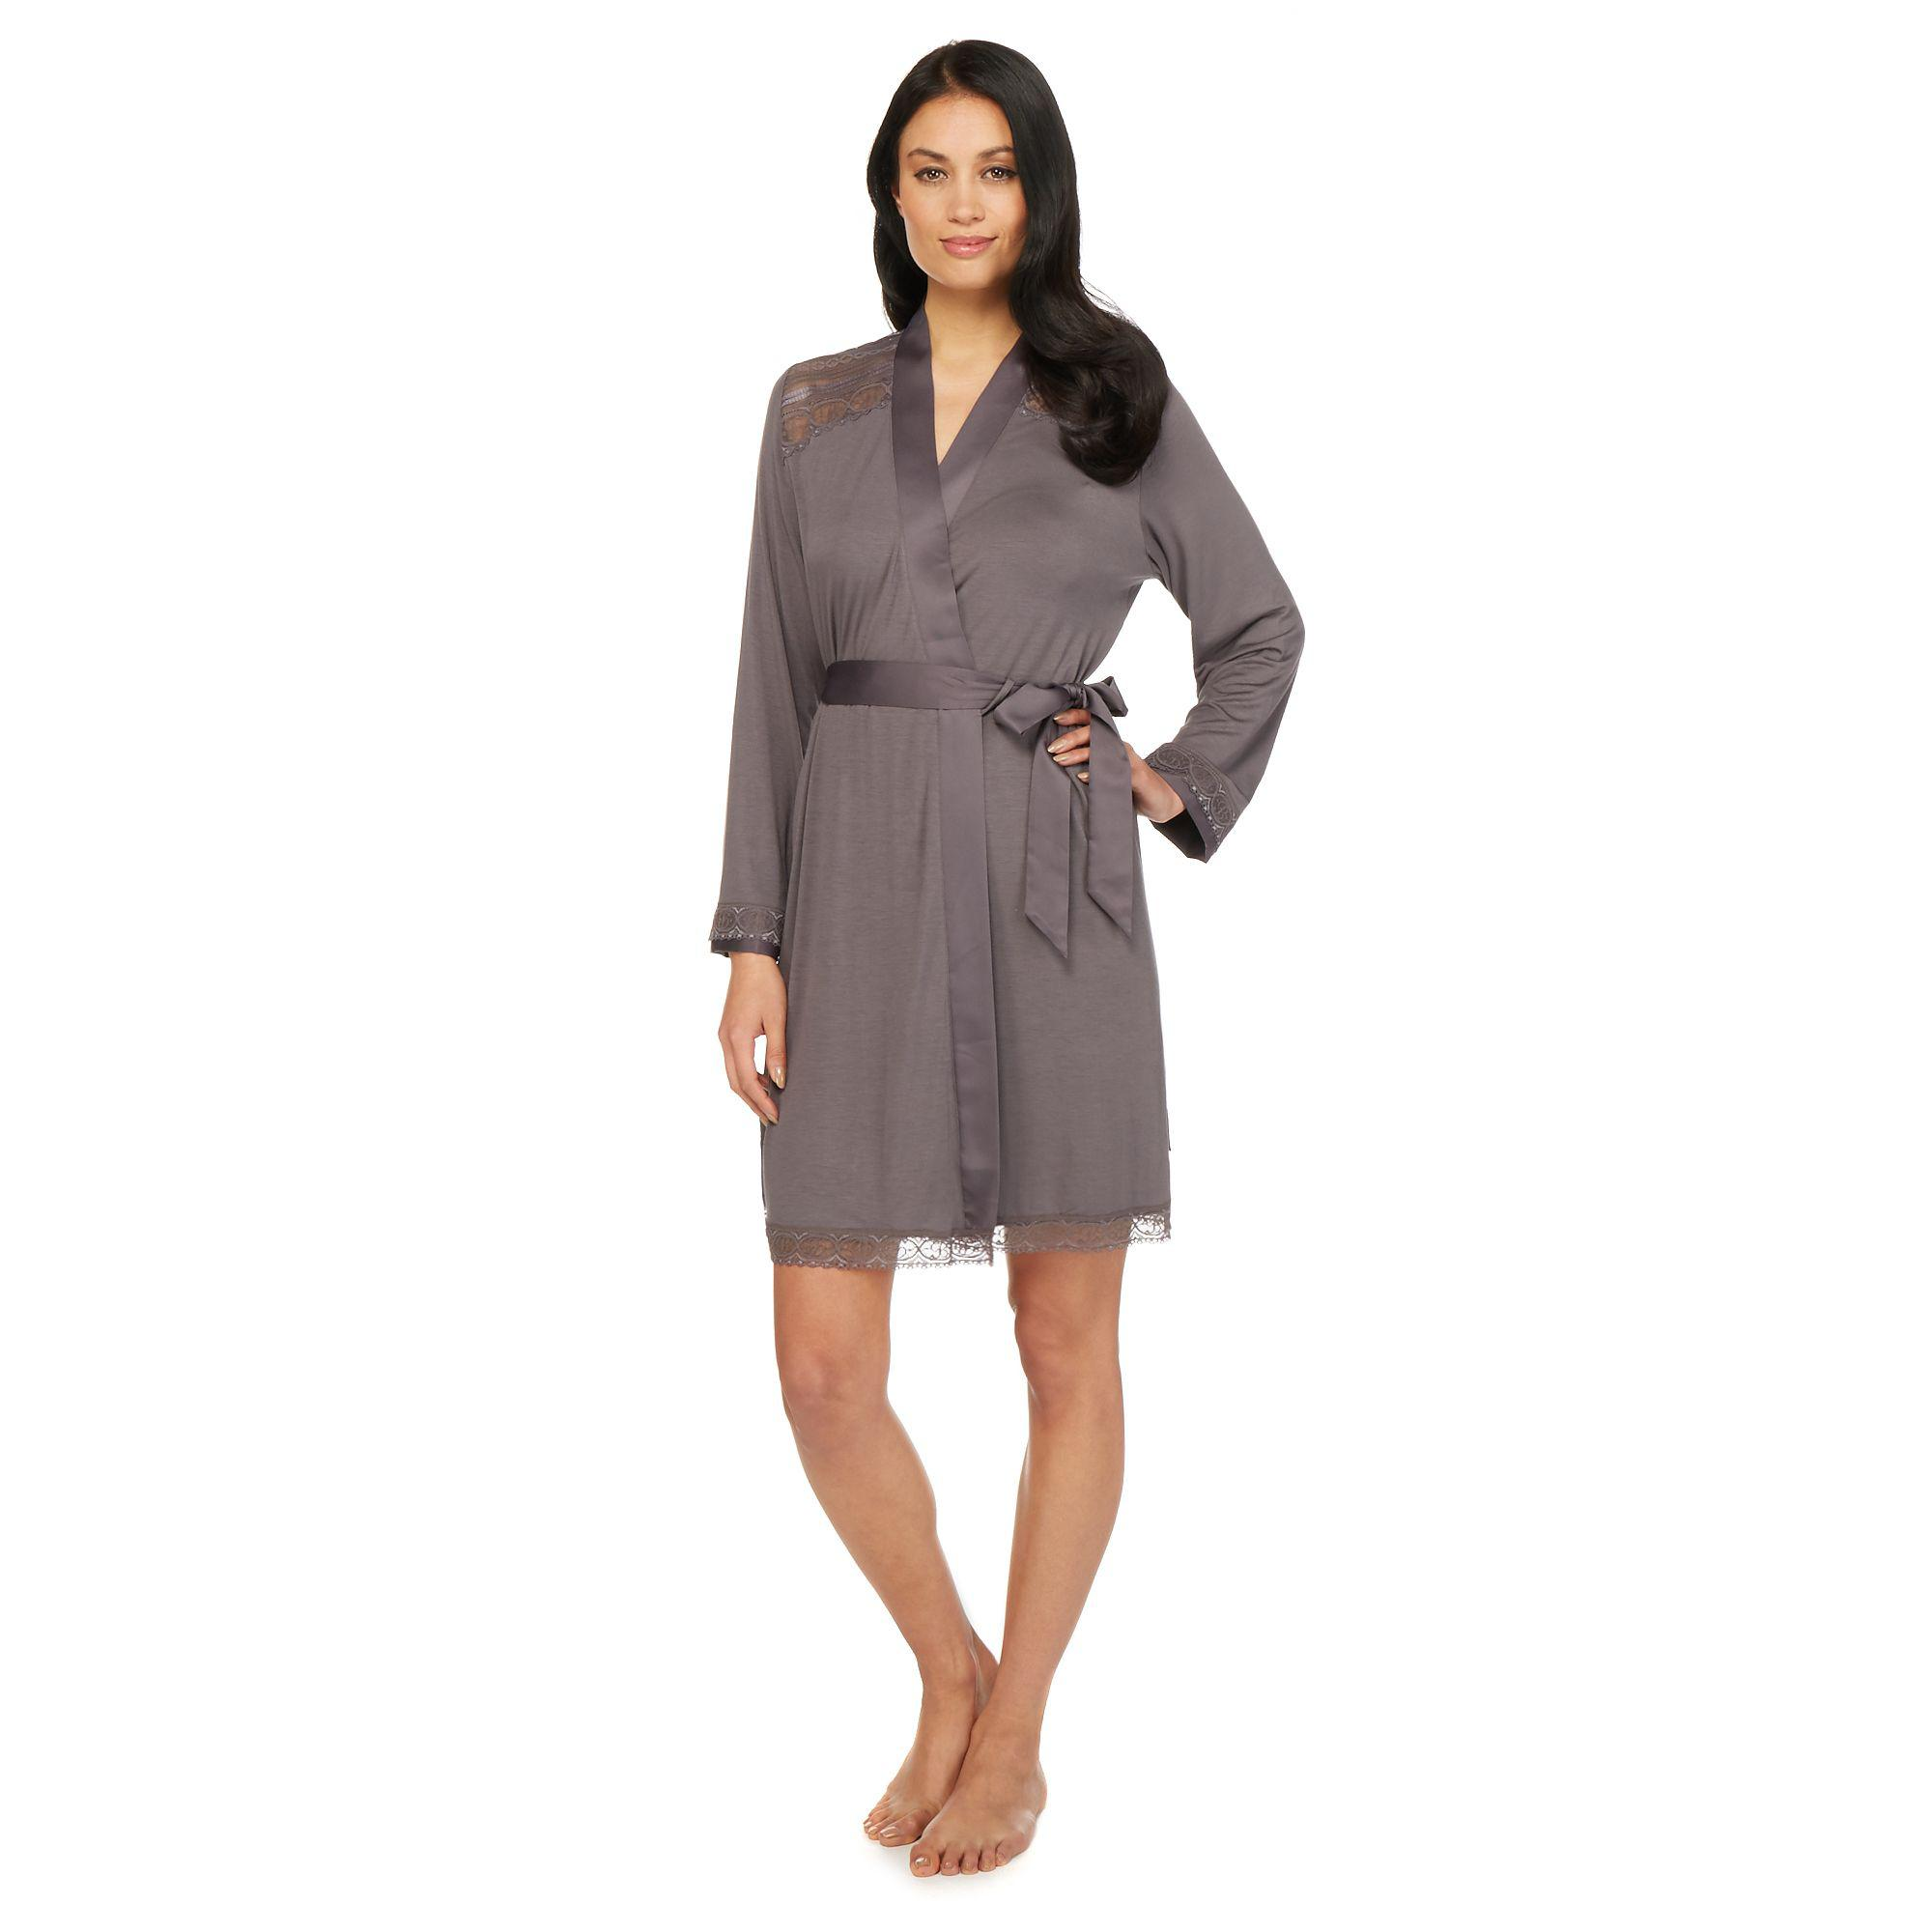 Ted Baker Grey Lace Dressing Gown In Gray Lyst